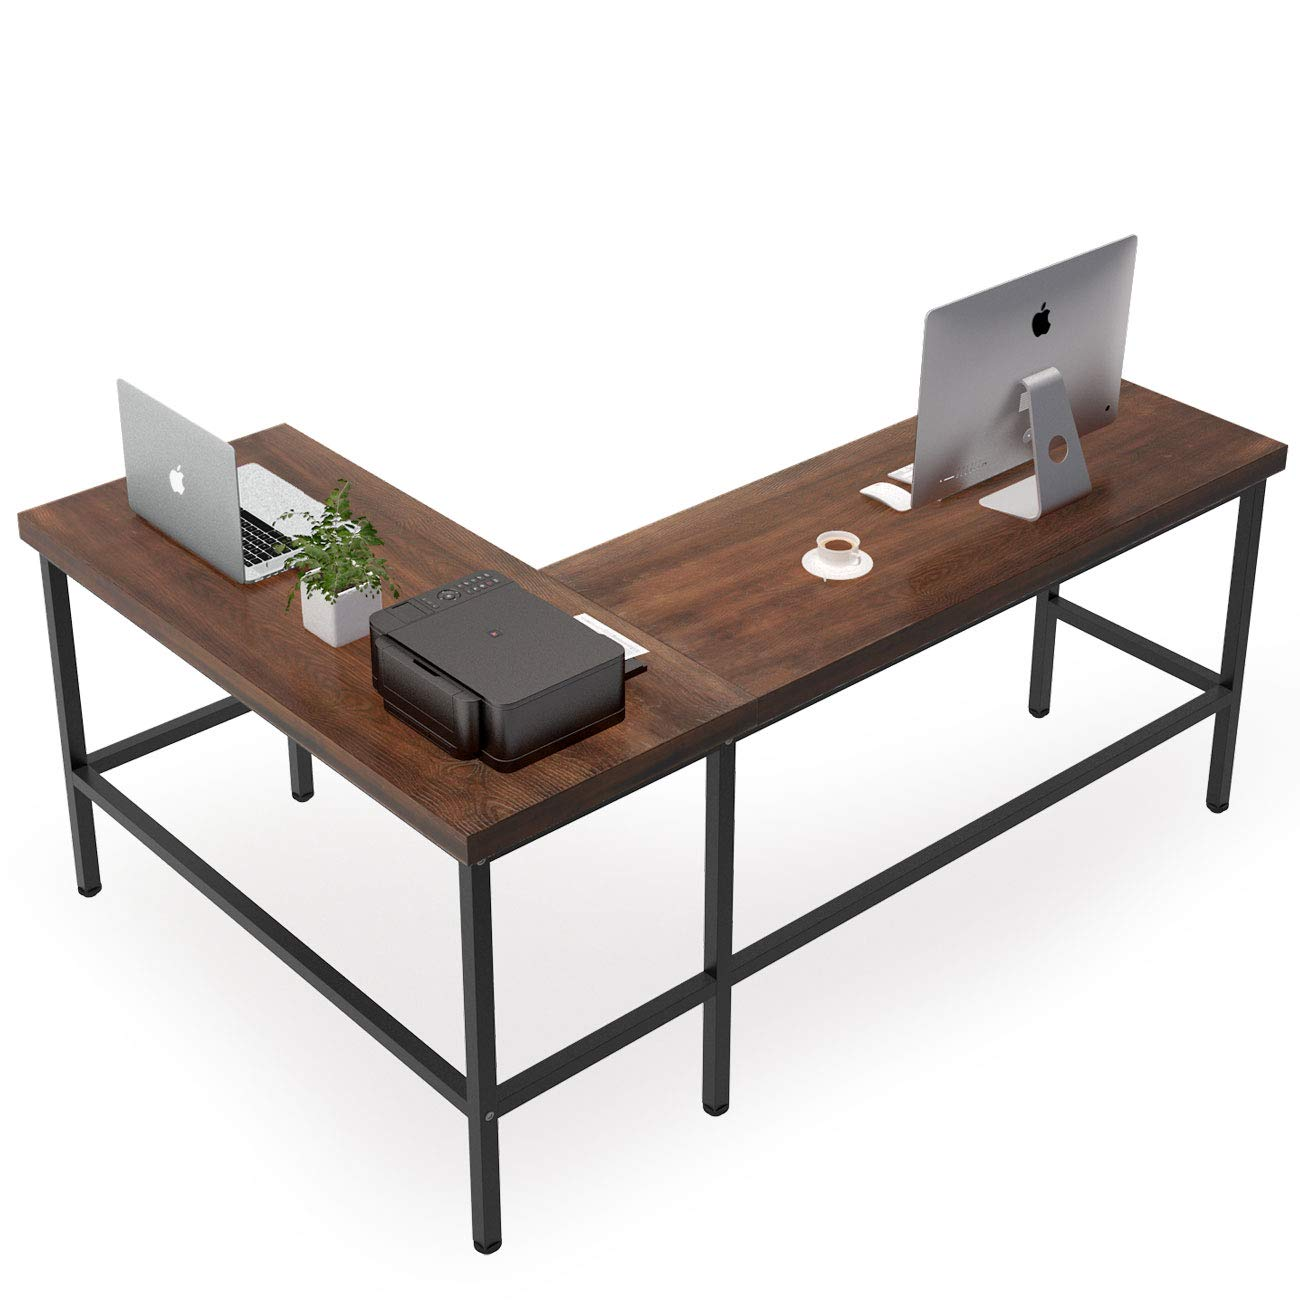 Tribesigns Solid Wood L-Shaped Desk, Rustic Corner Computer Desk, PC Laptop Desk Sturdy Gaming Table Workstation for Home Office by Tribesigns